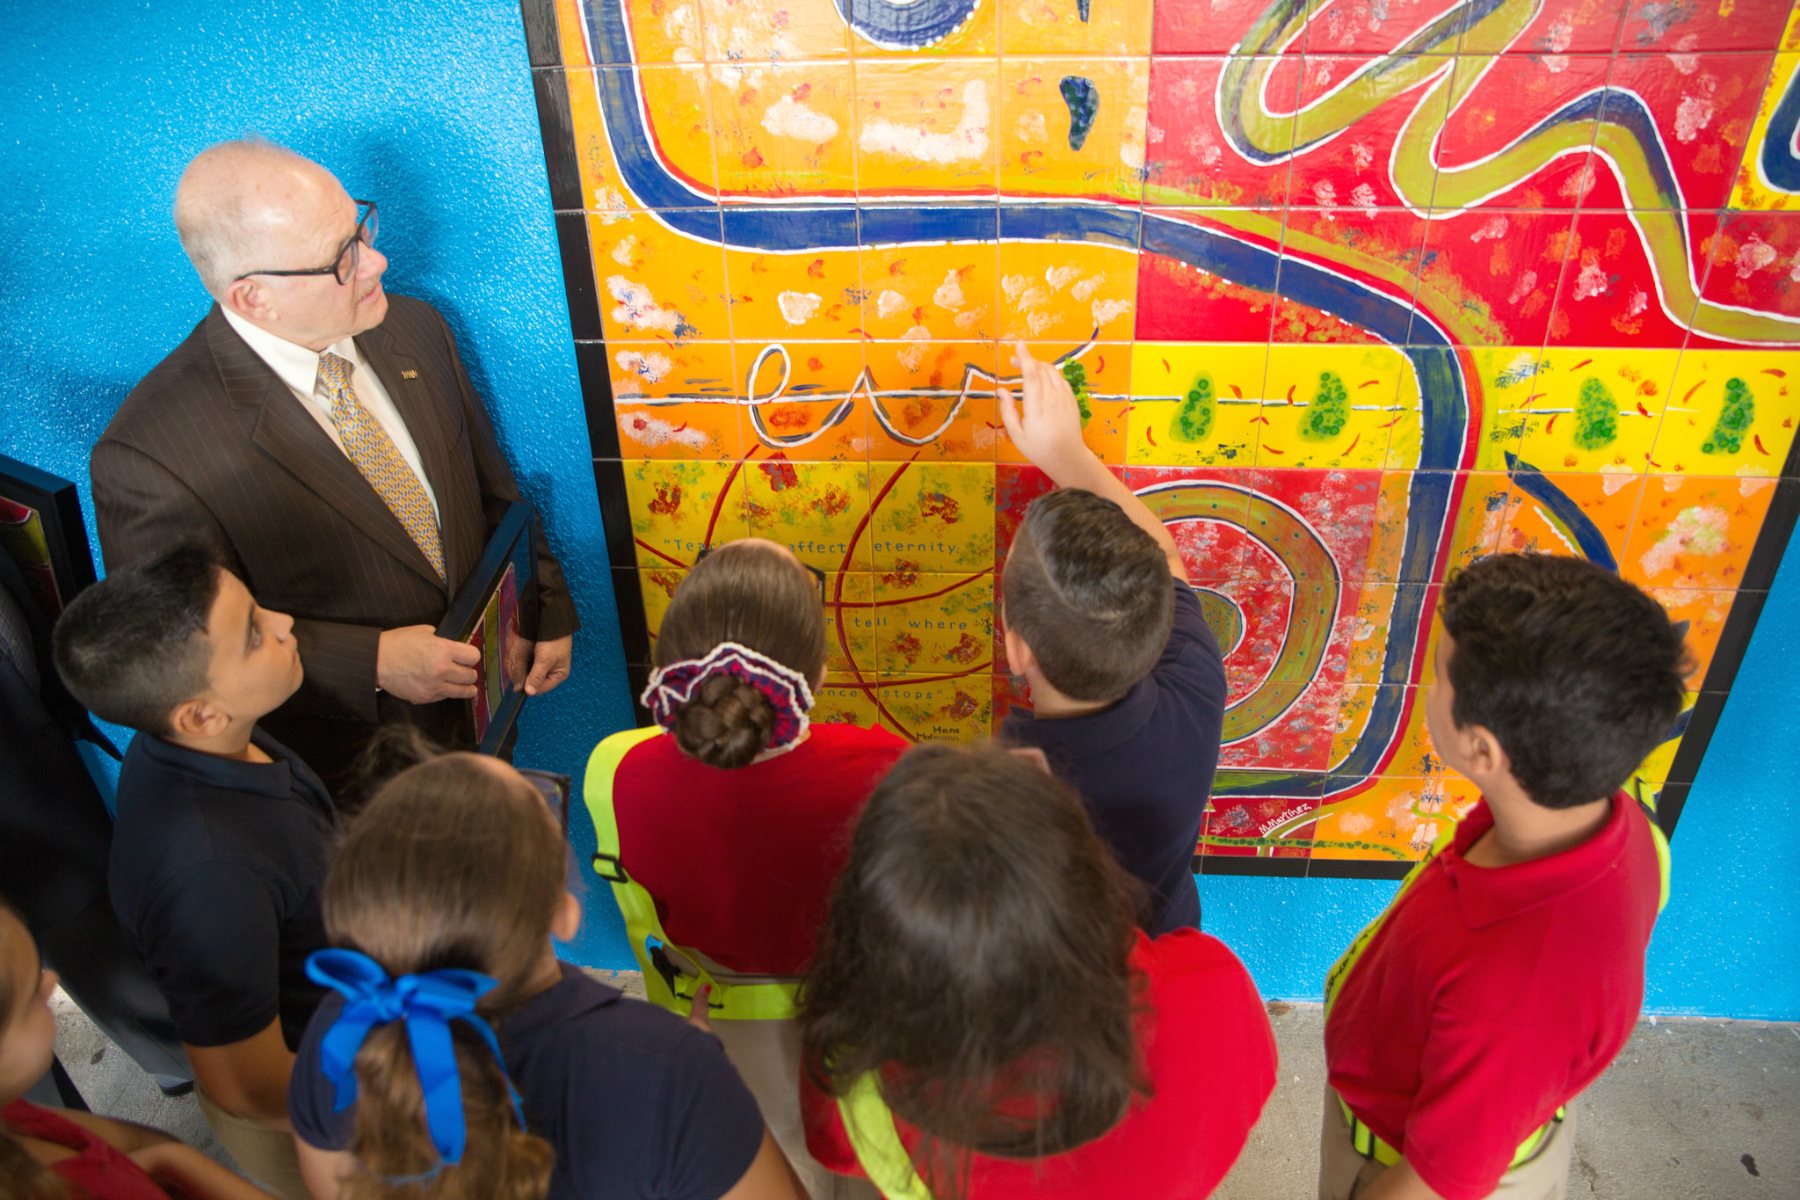 Sweetwater Elementary students explain the work that went into the mural to Rosenberg.